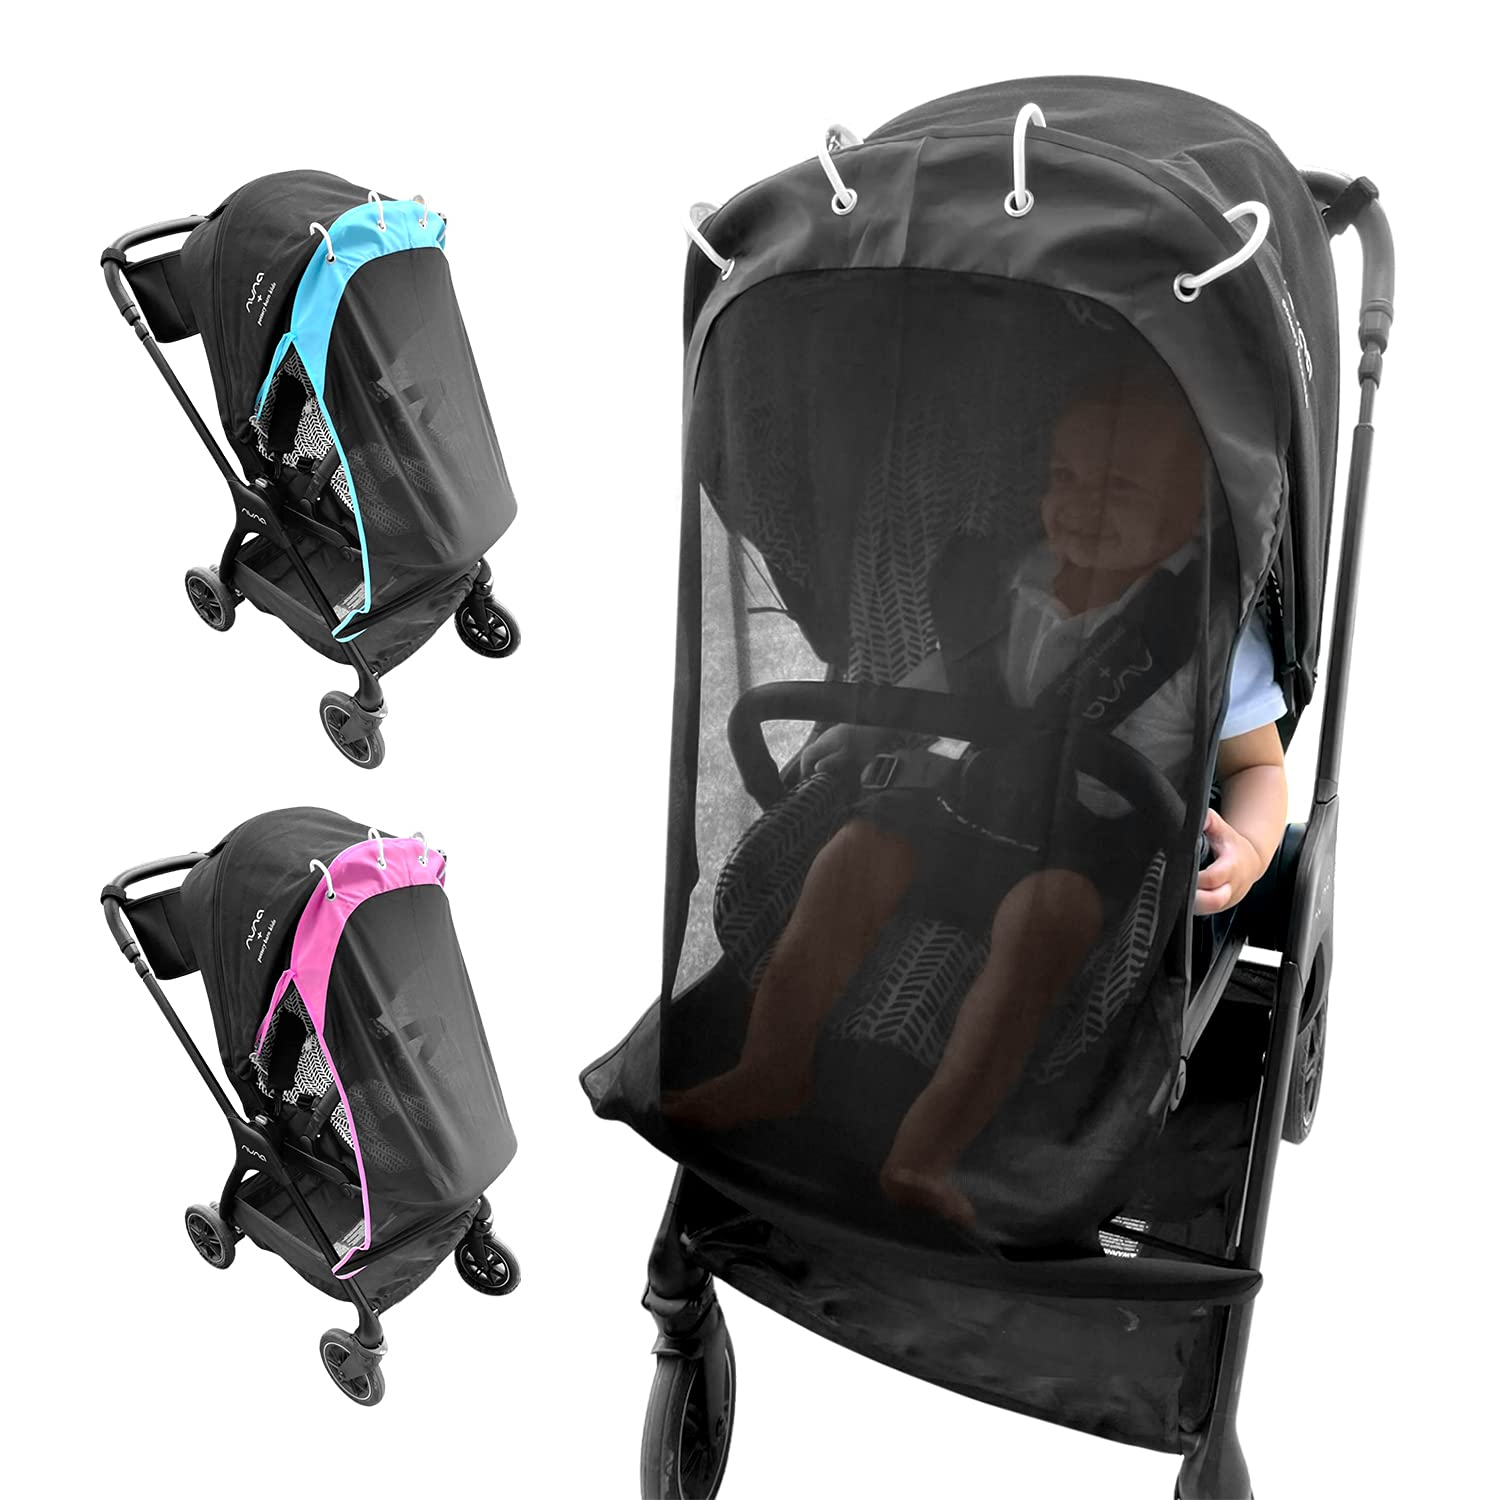 Sunshade for Stroller 30 SPF Stroller Cover Universal & Adjustable UV Sun Cover for Stroller to Protect Your Baby from Sun See Through Stroller Shade Canopy Net